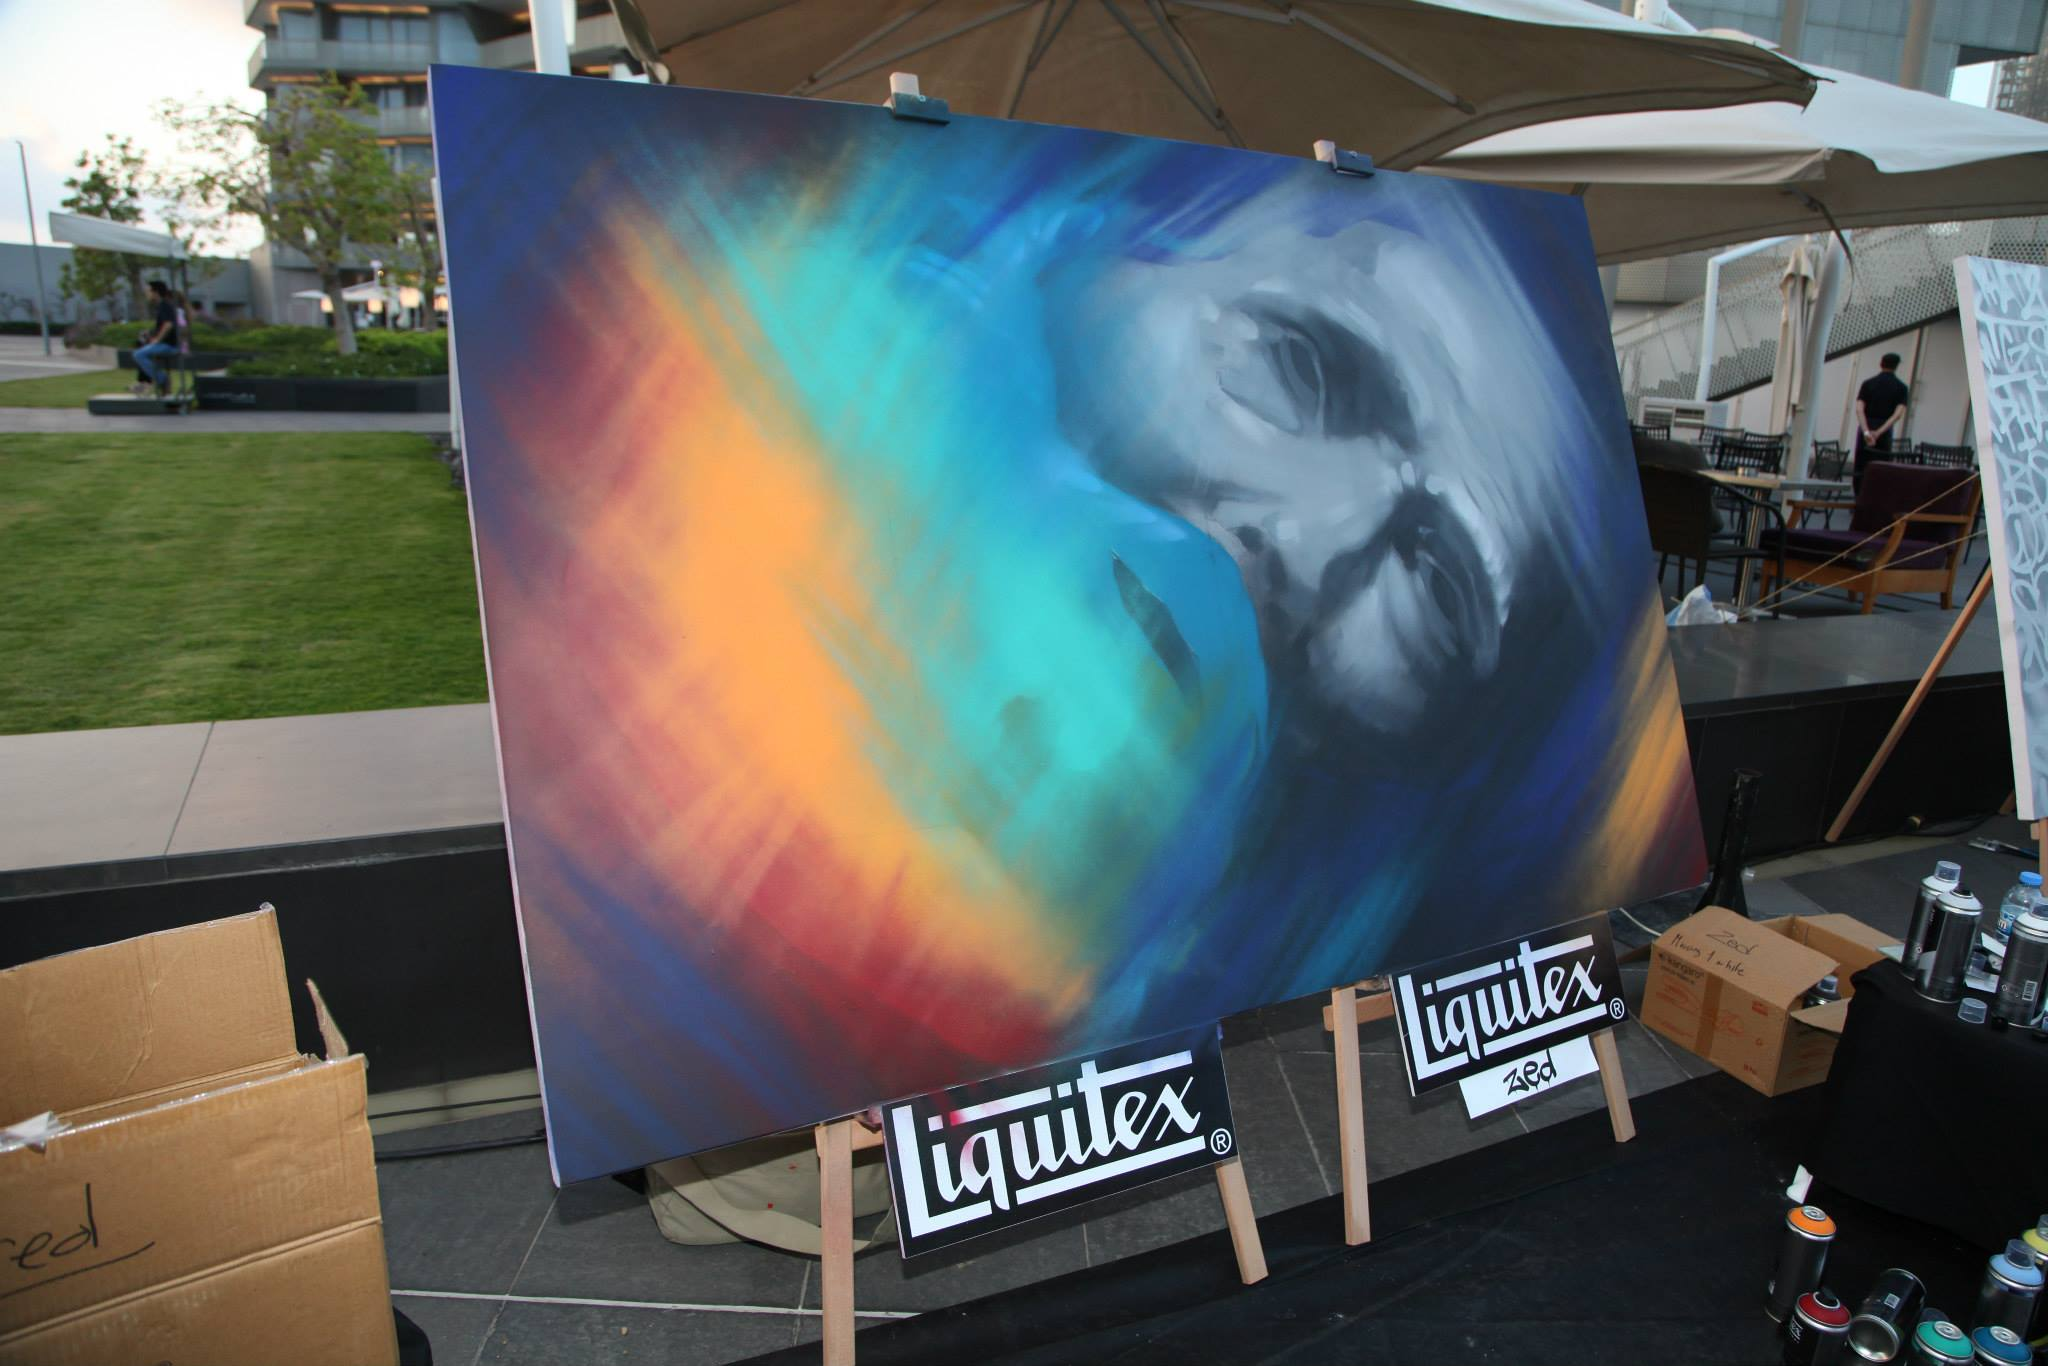 Liquitex Launch Event